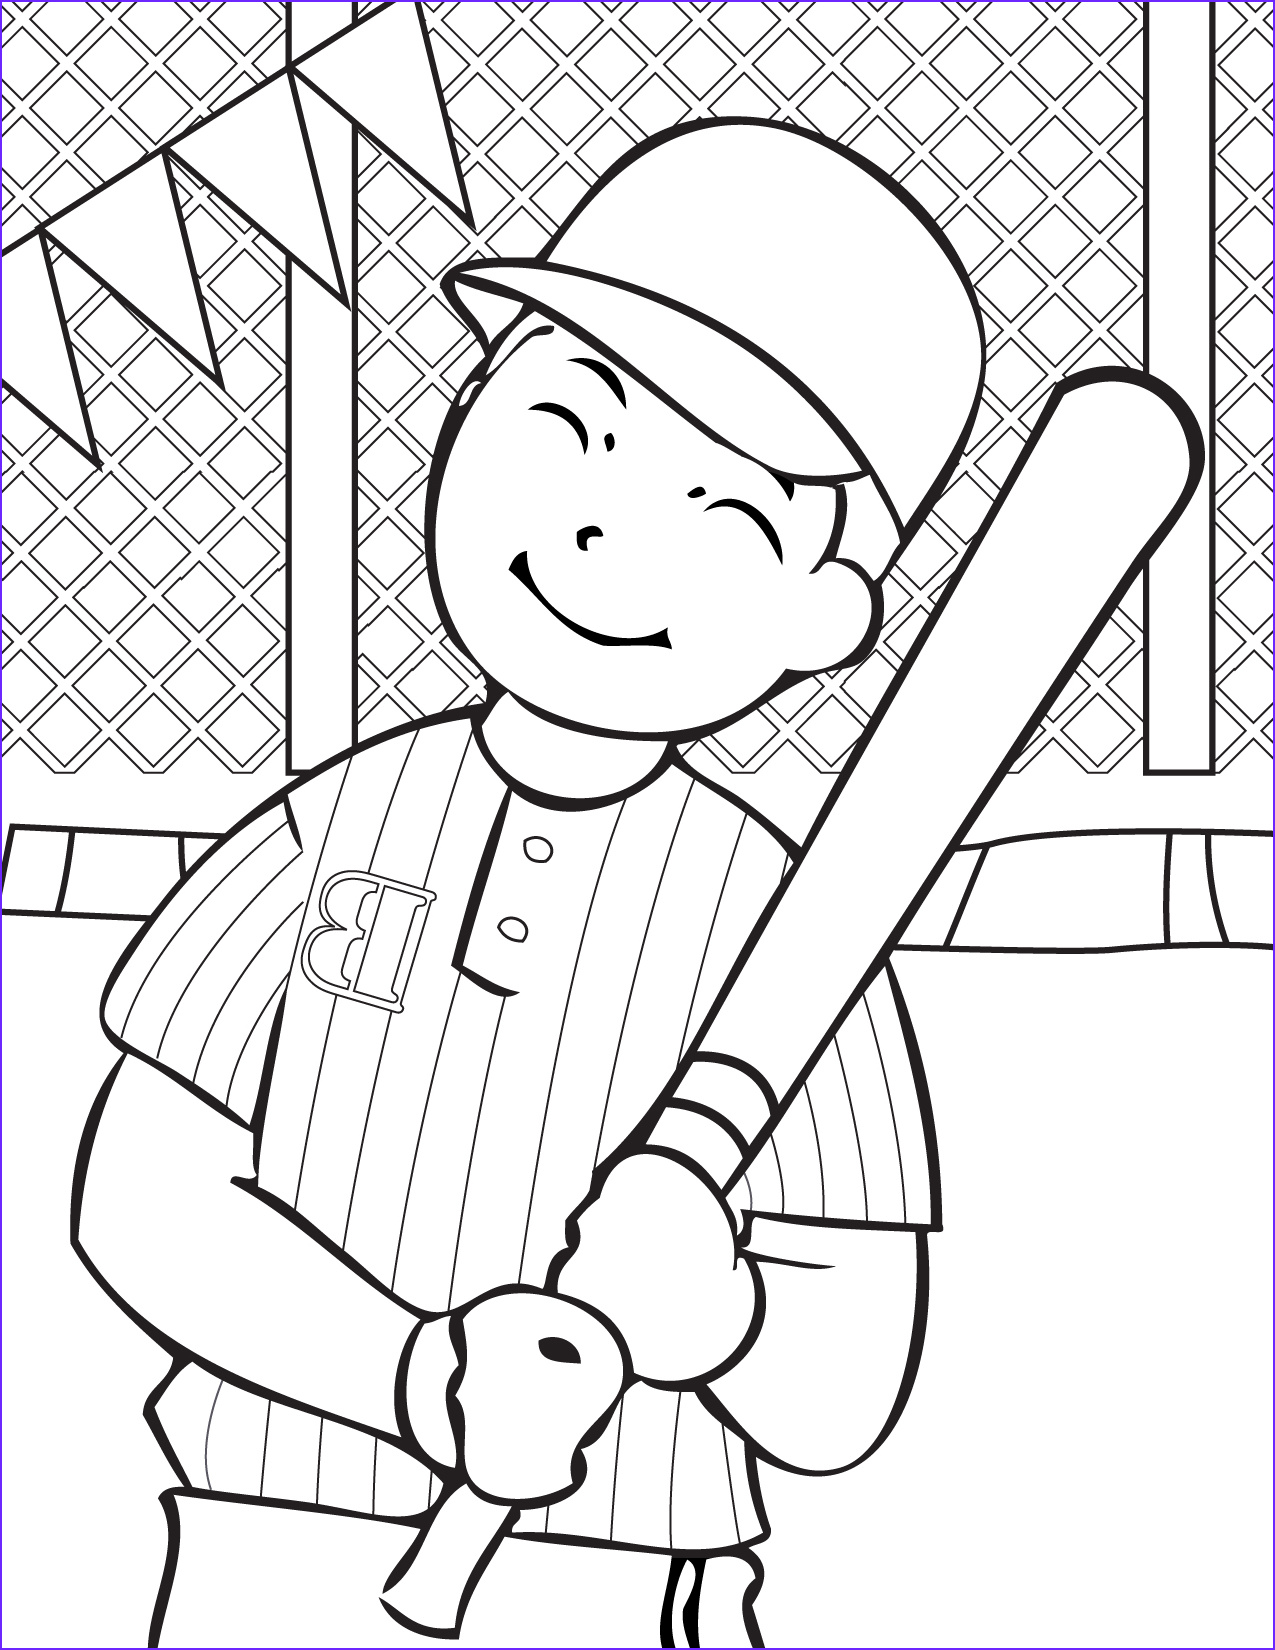 Sports Coloring Pages Cool Photos Free Printable Baseball Coloring Pages for Kids Best